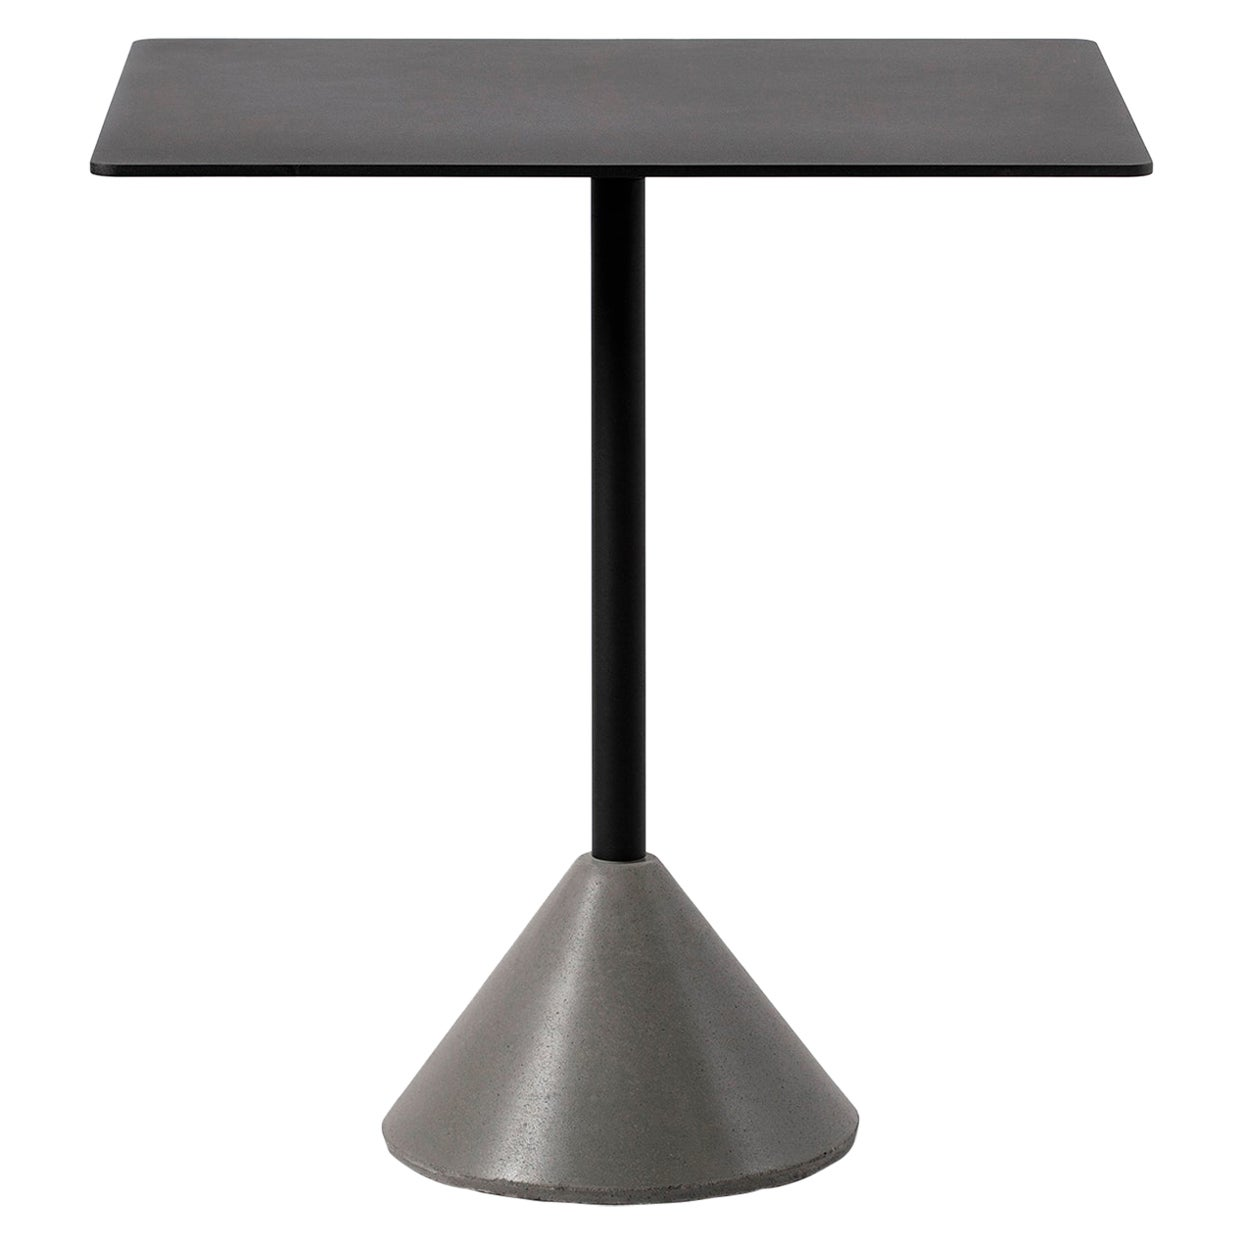 Square Dining Table 'DING' Made of Concrete and Aluminum 'Black'